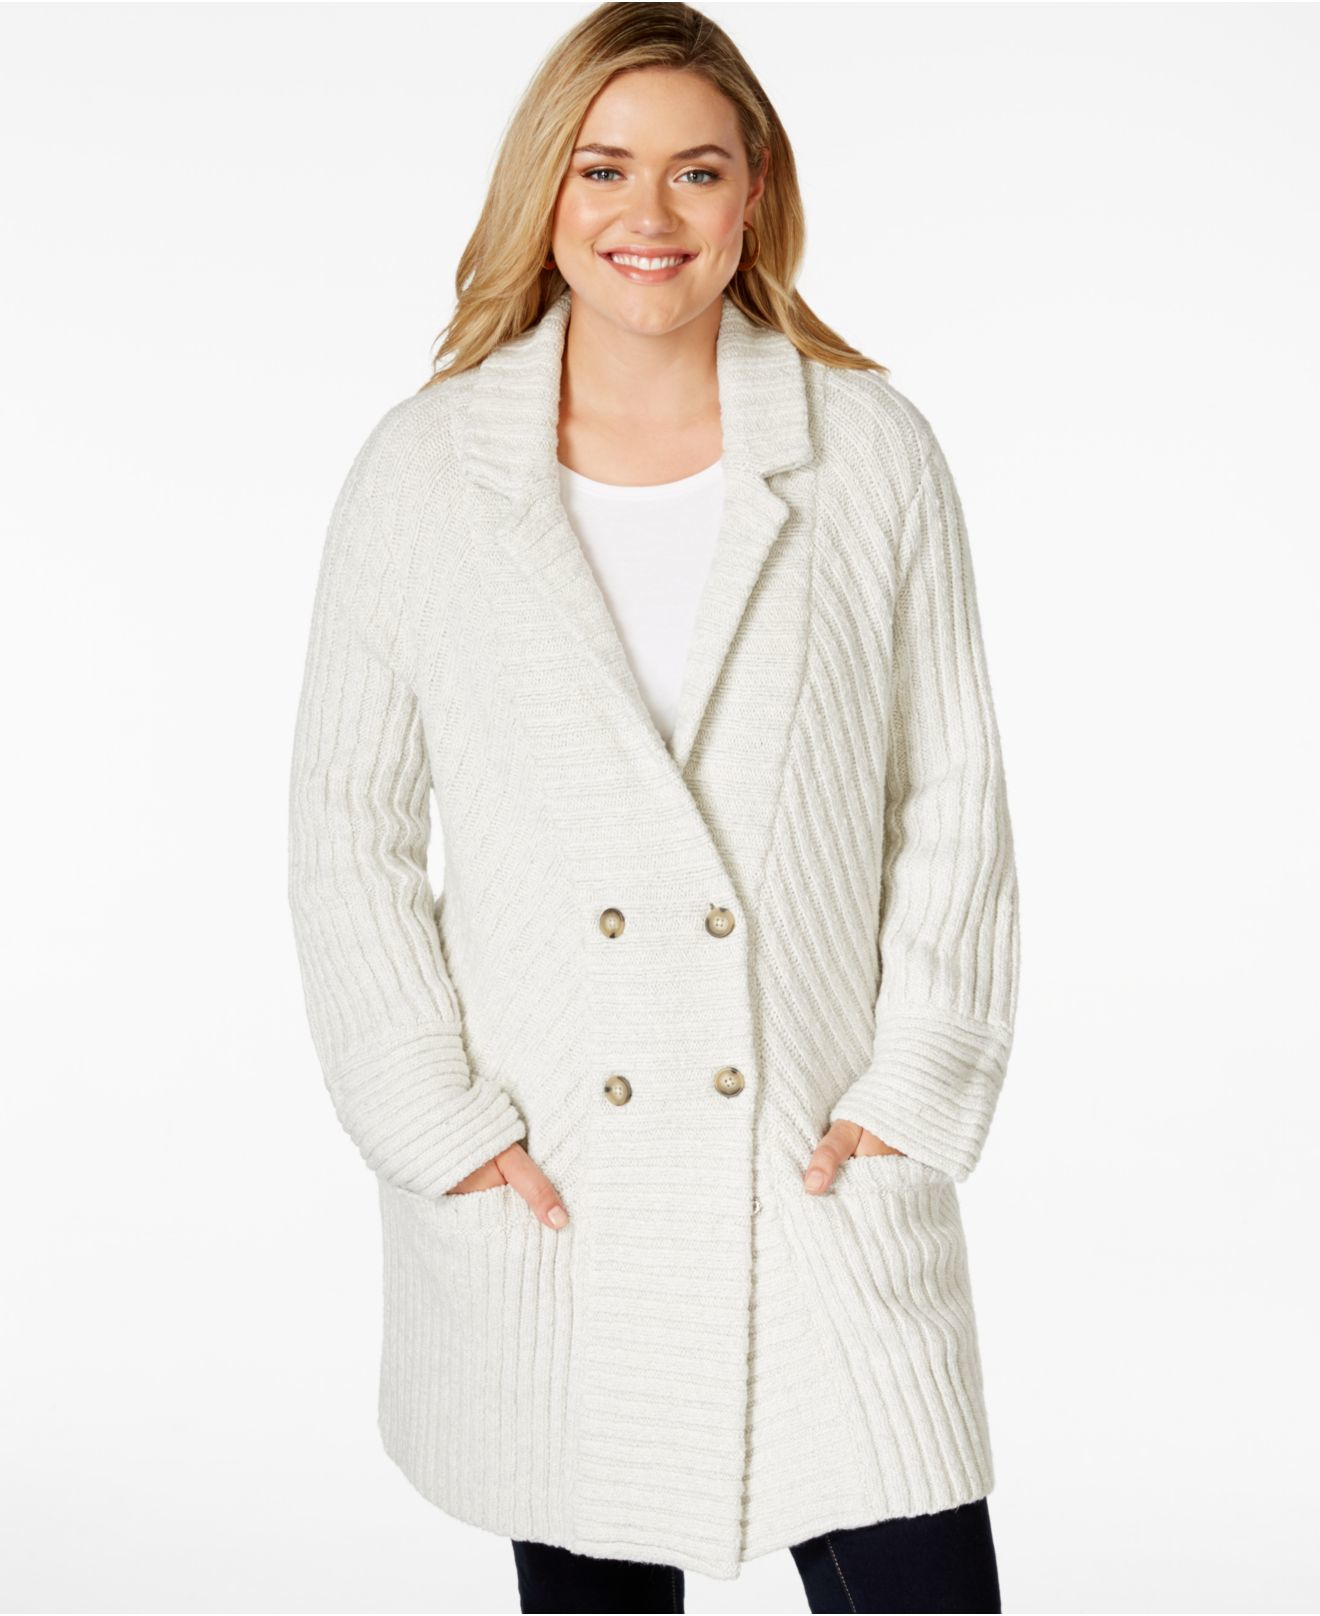 Lucky brand Plus Size Rib-knit Sweater Coat in Natural | Lyst